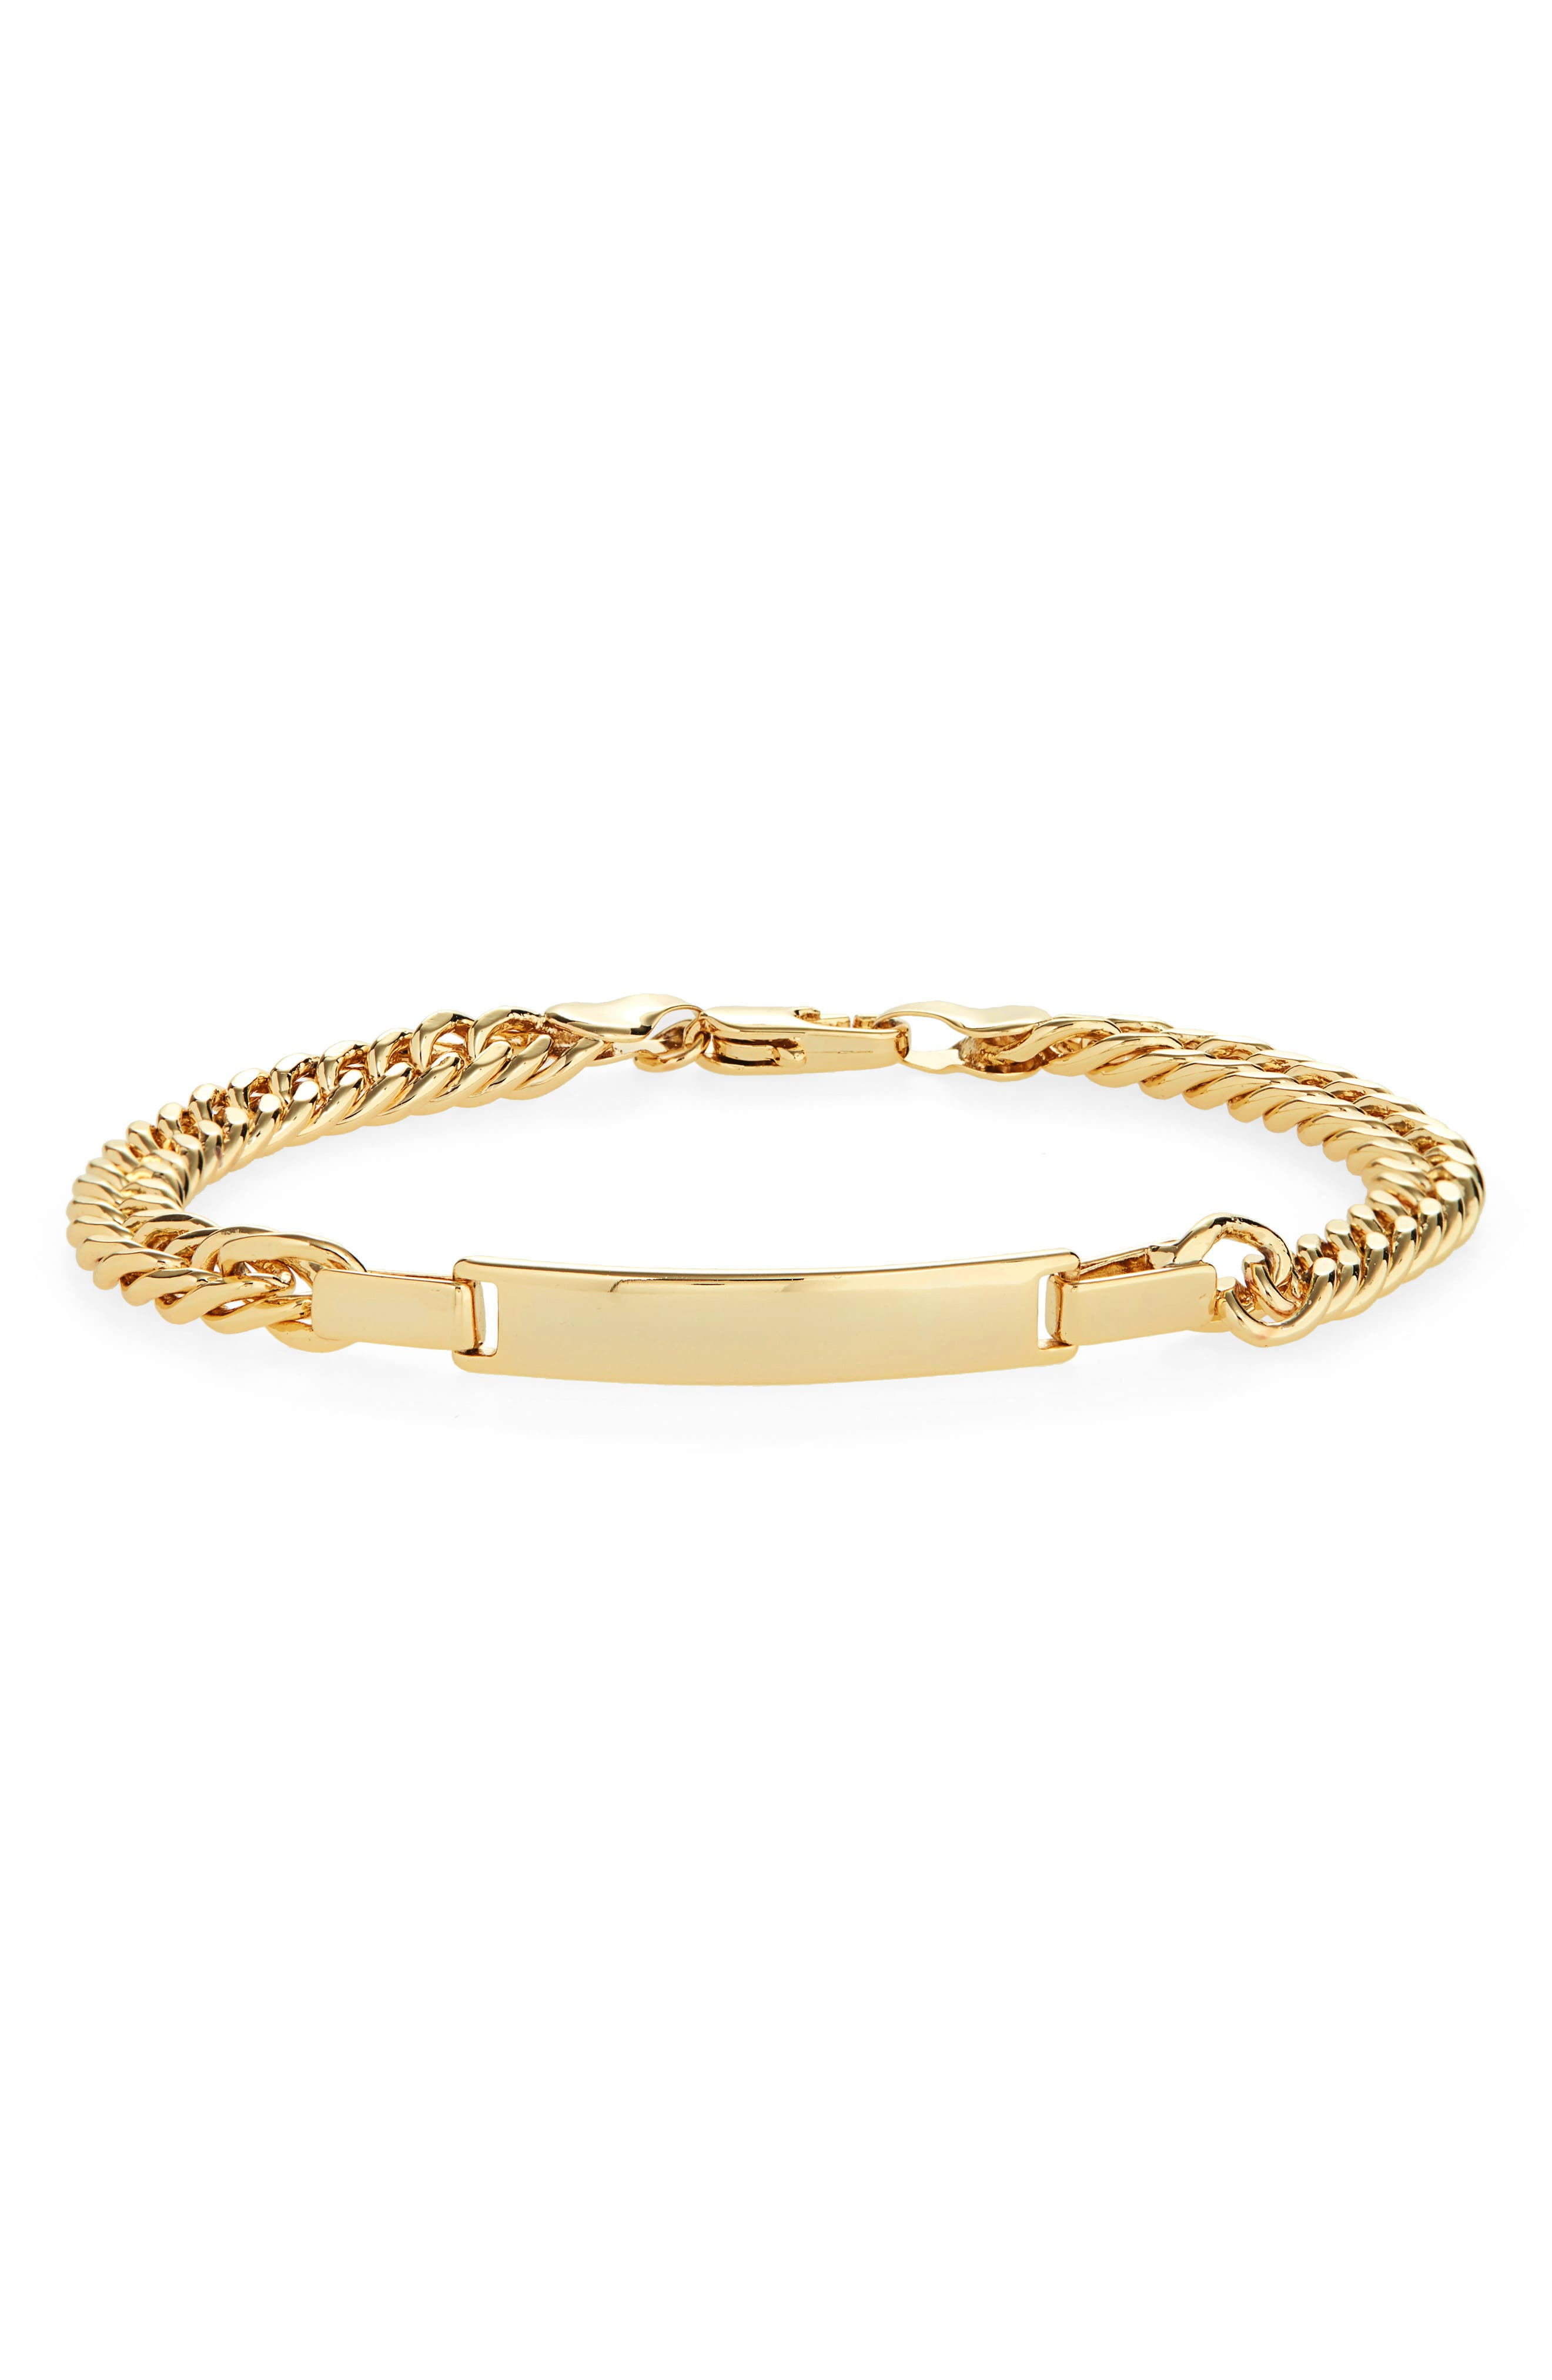 Veronica Bracelet in Gold